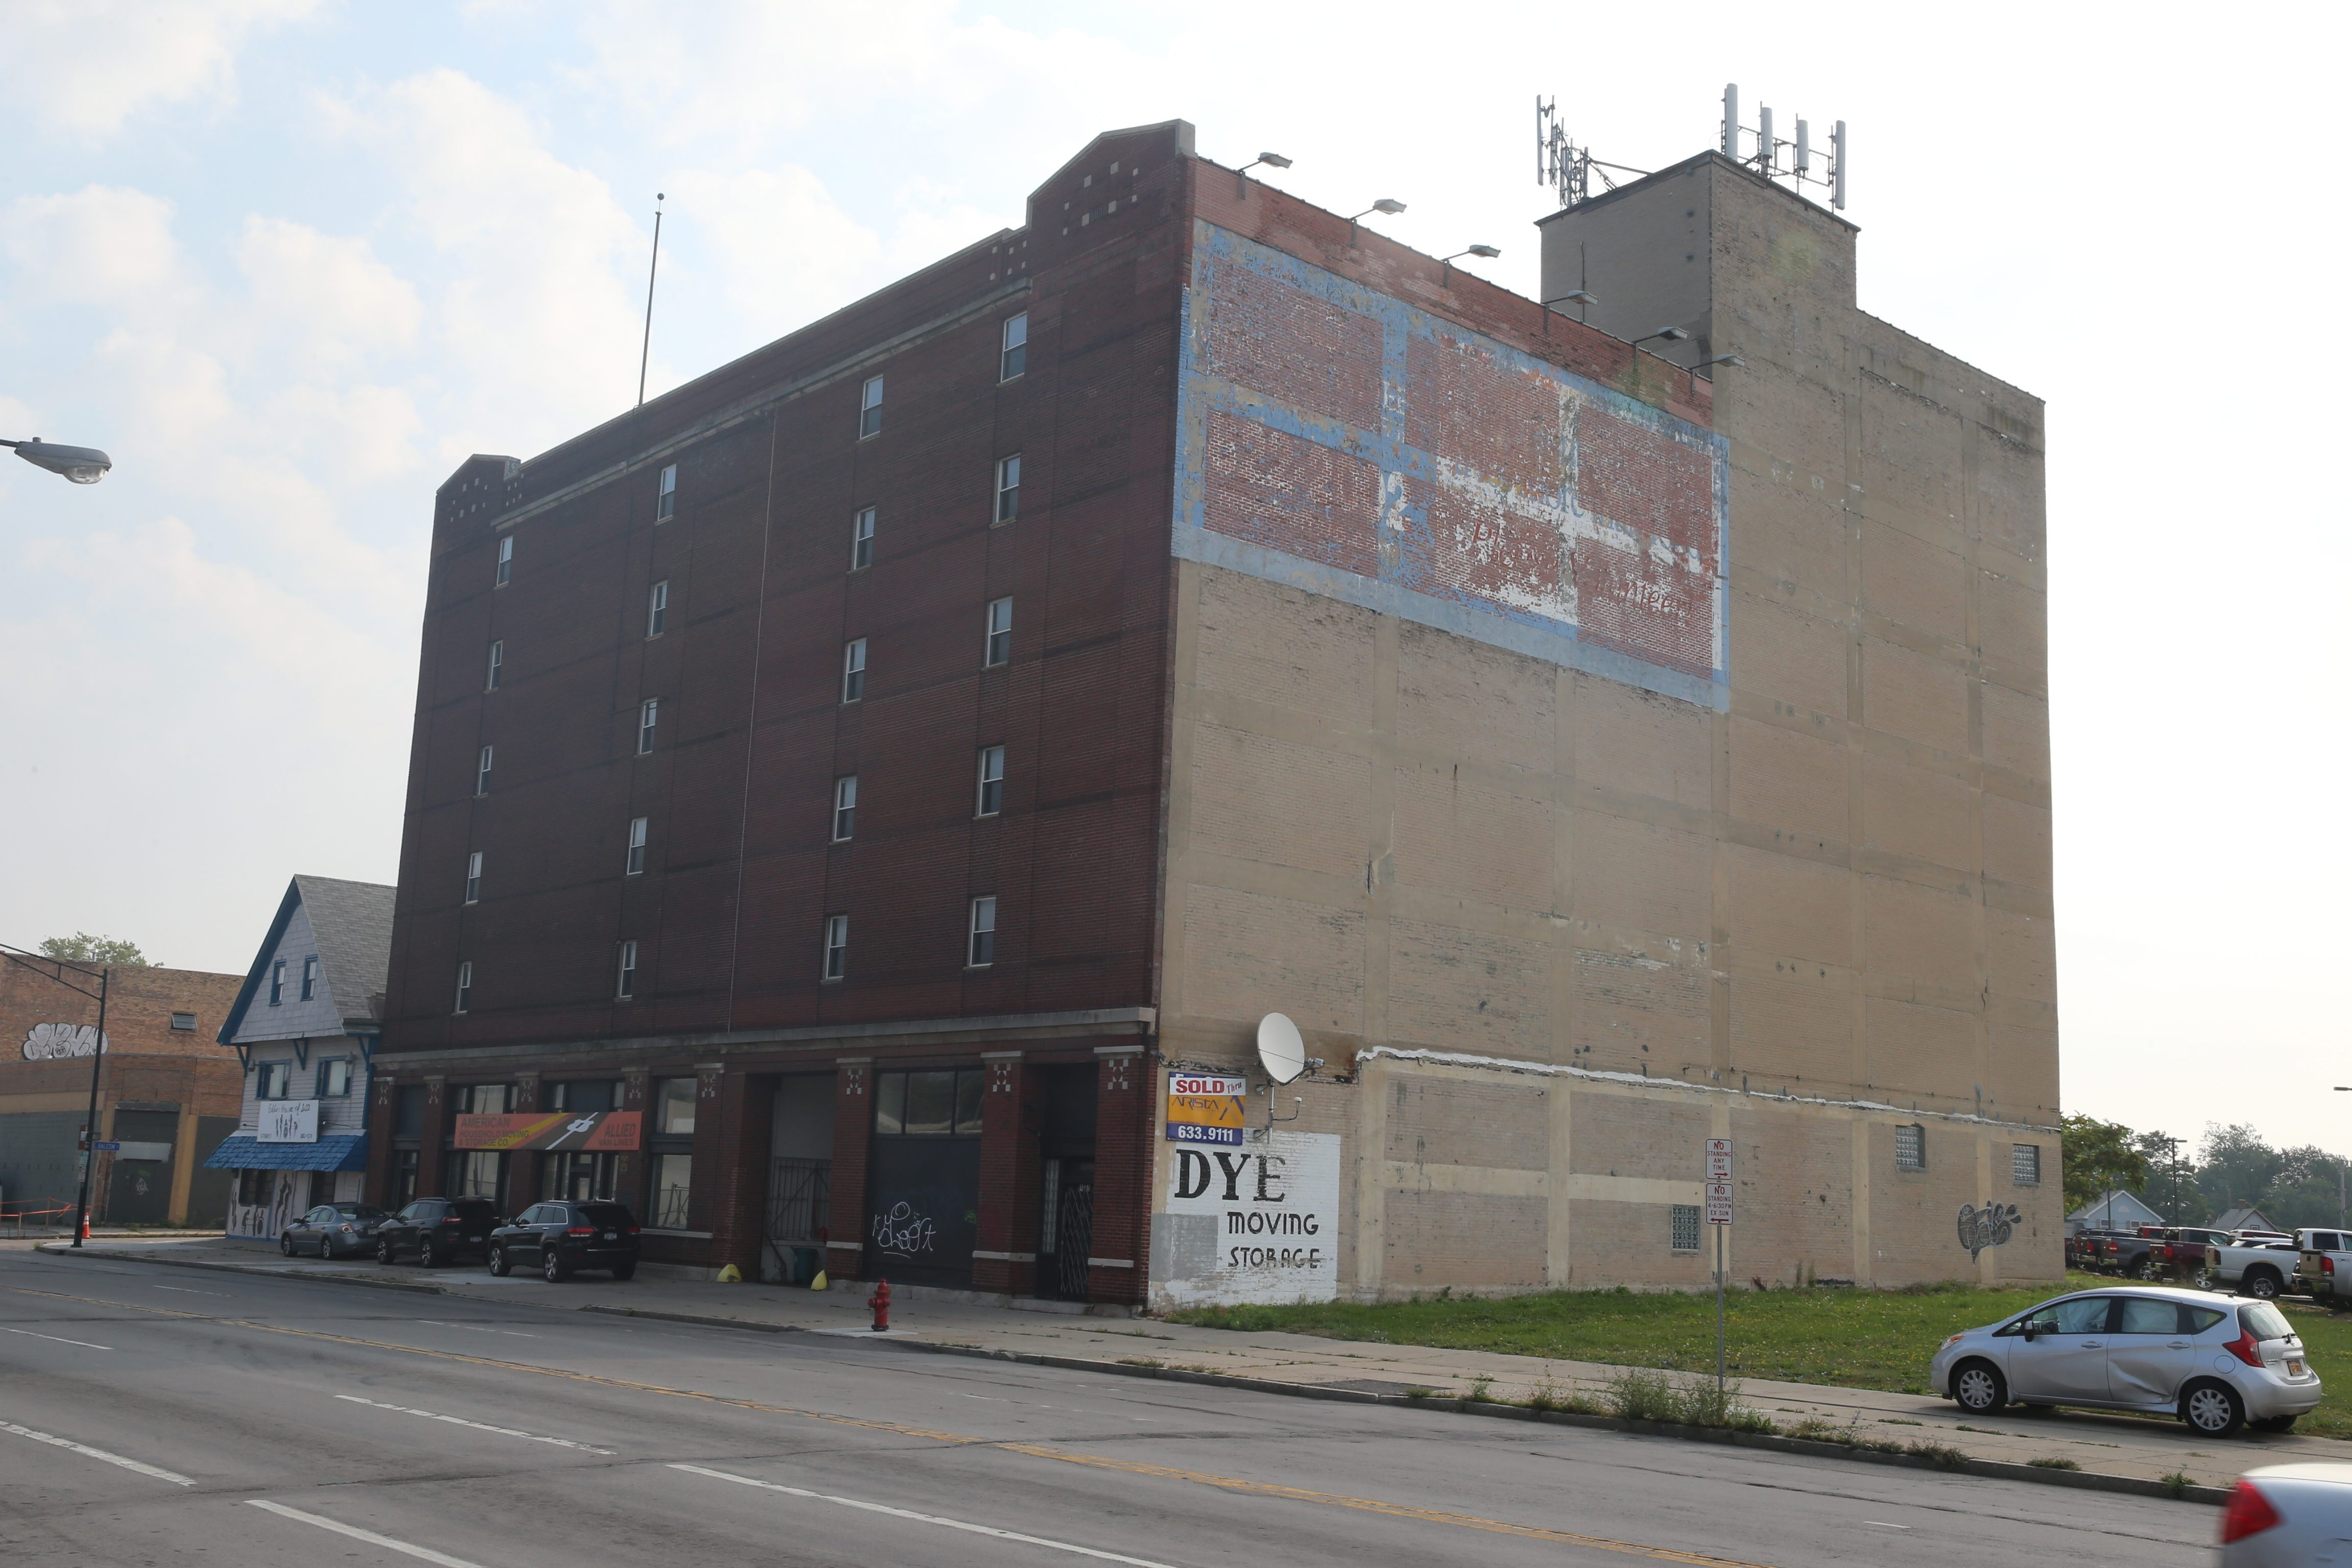 The Planning Board approved Sinatra & Company's plans for the former American Household warehouse at 1661 Main St. The conversion includes 55 apartments and commercial space.